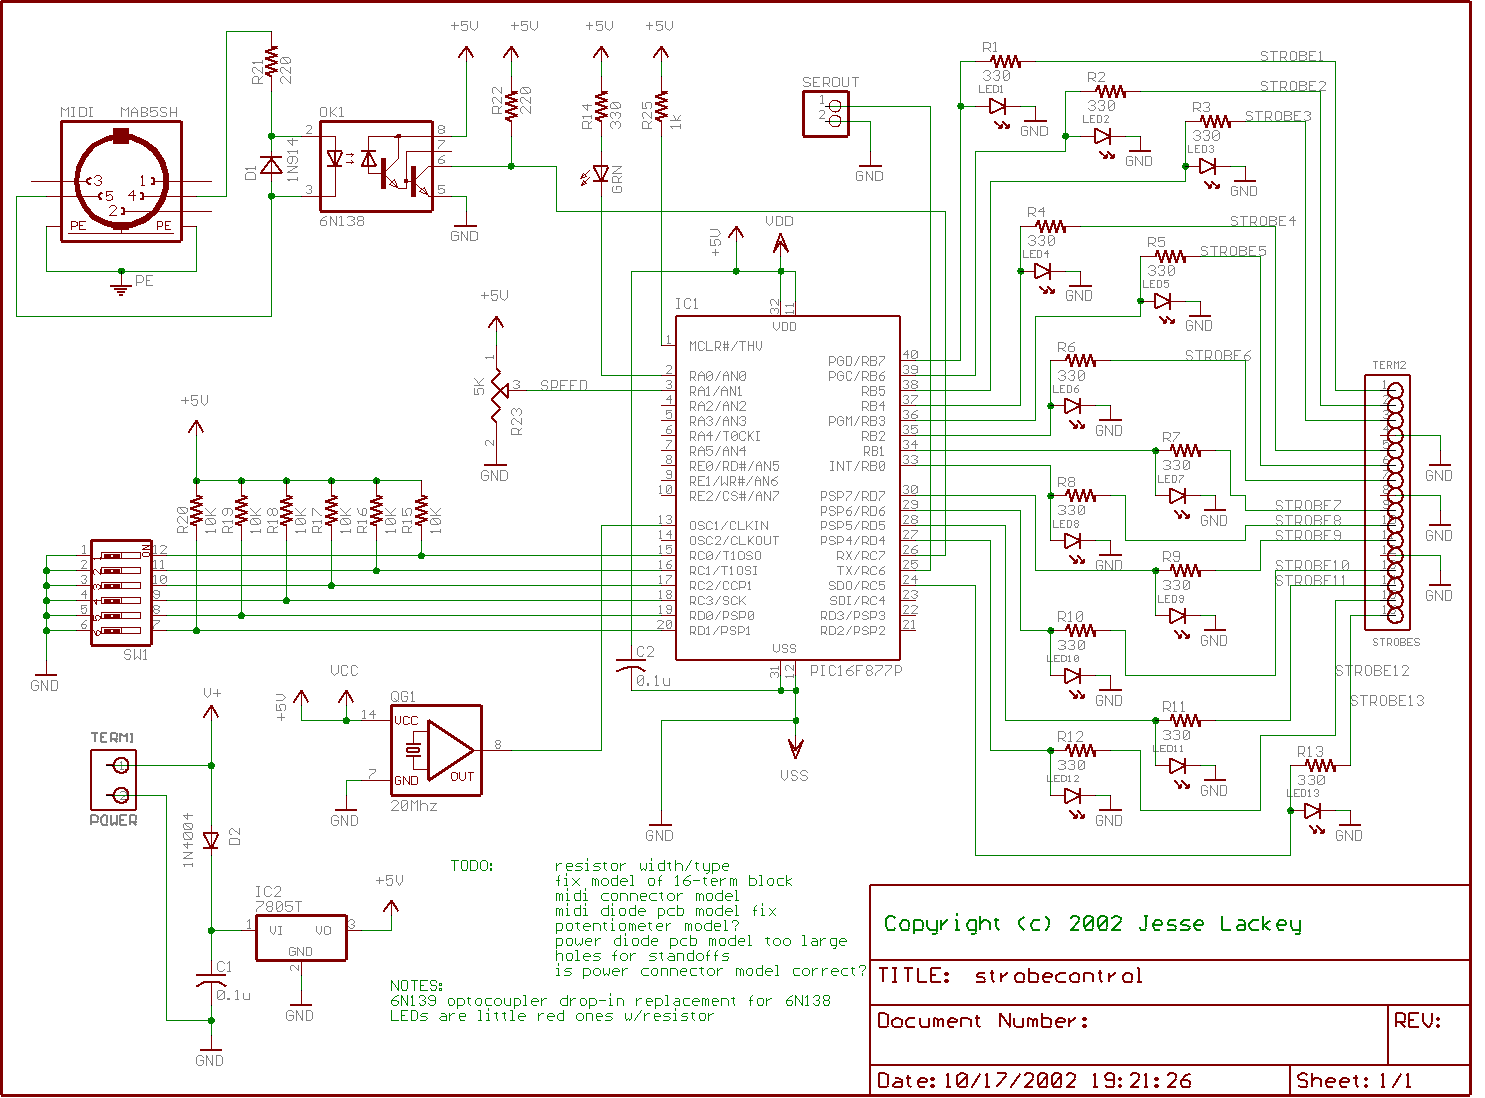 strobe_controlboard_schematic all kinds of small & (relatively) simple gizmos and hacks Belden 9727 Wiring-Diagram DMX at readyjetset.co